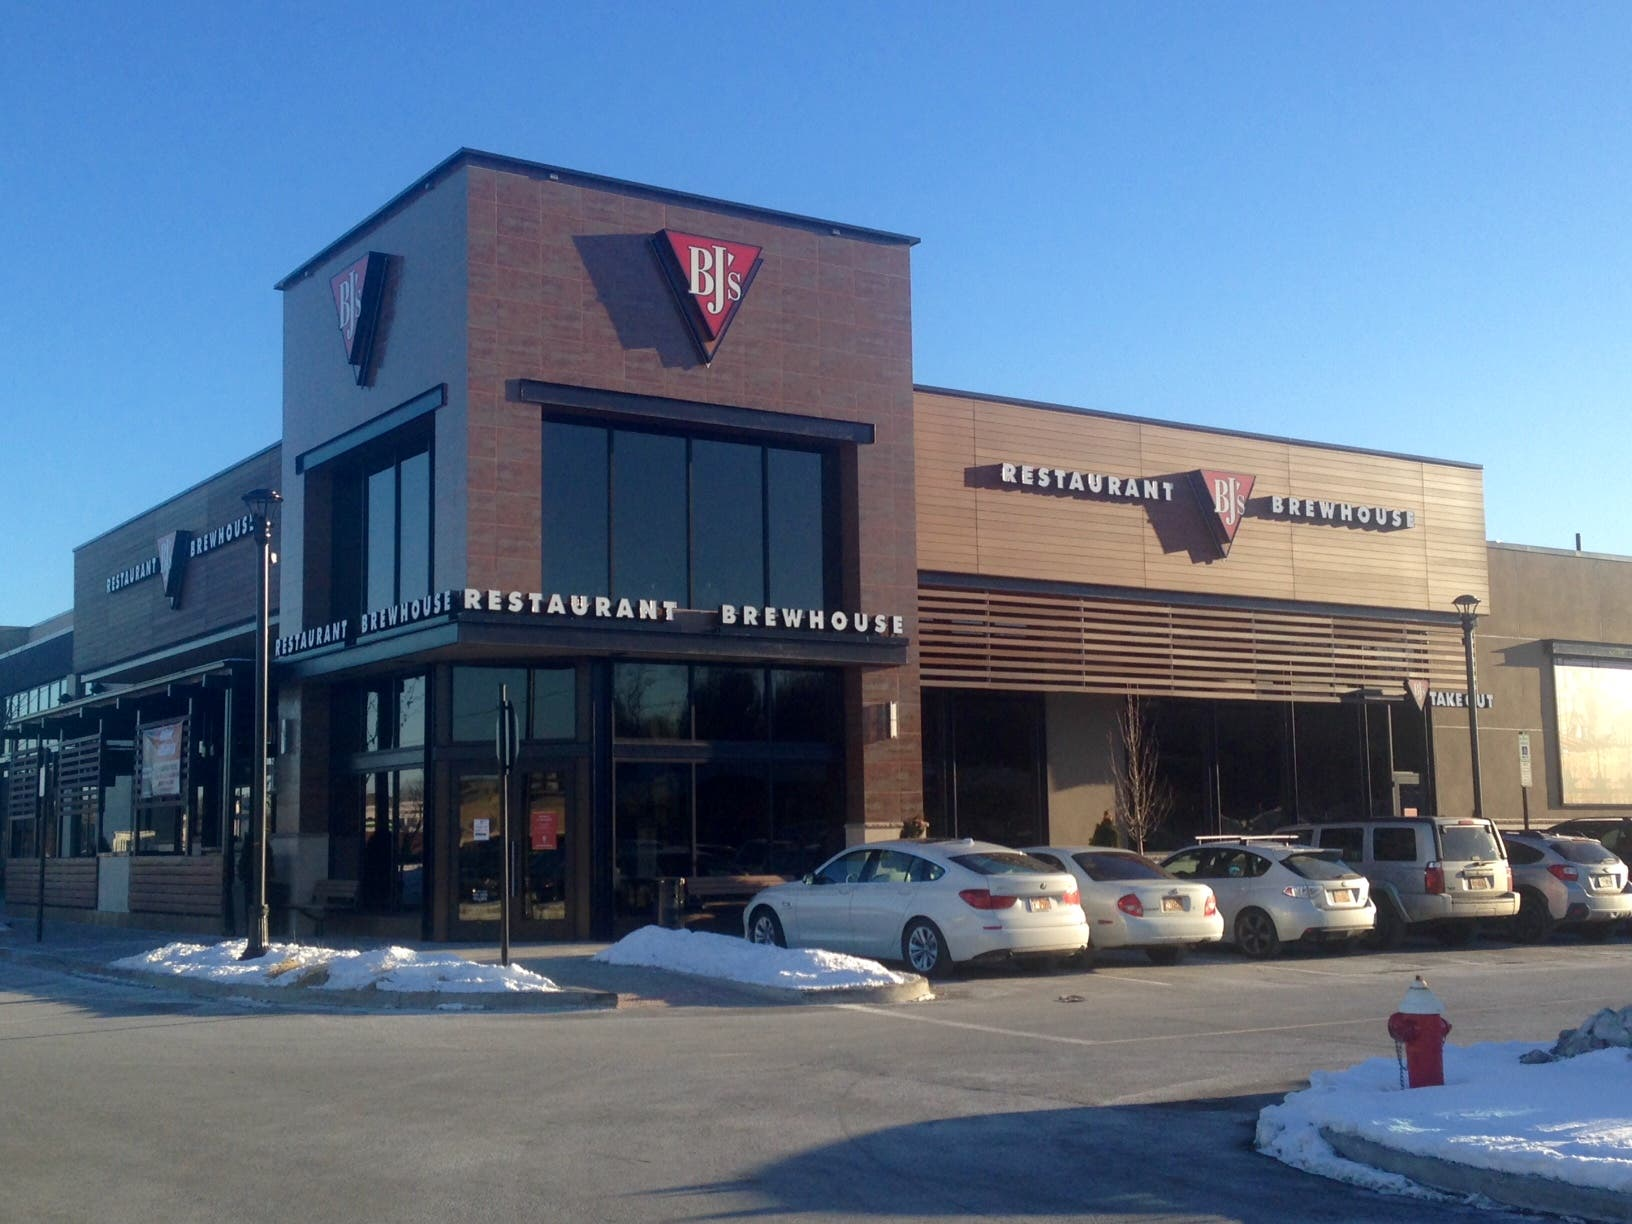 Bj S Restaurant Brewhouse Now Open At The Shops At Nanuet New